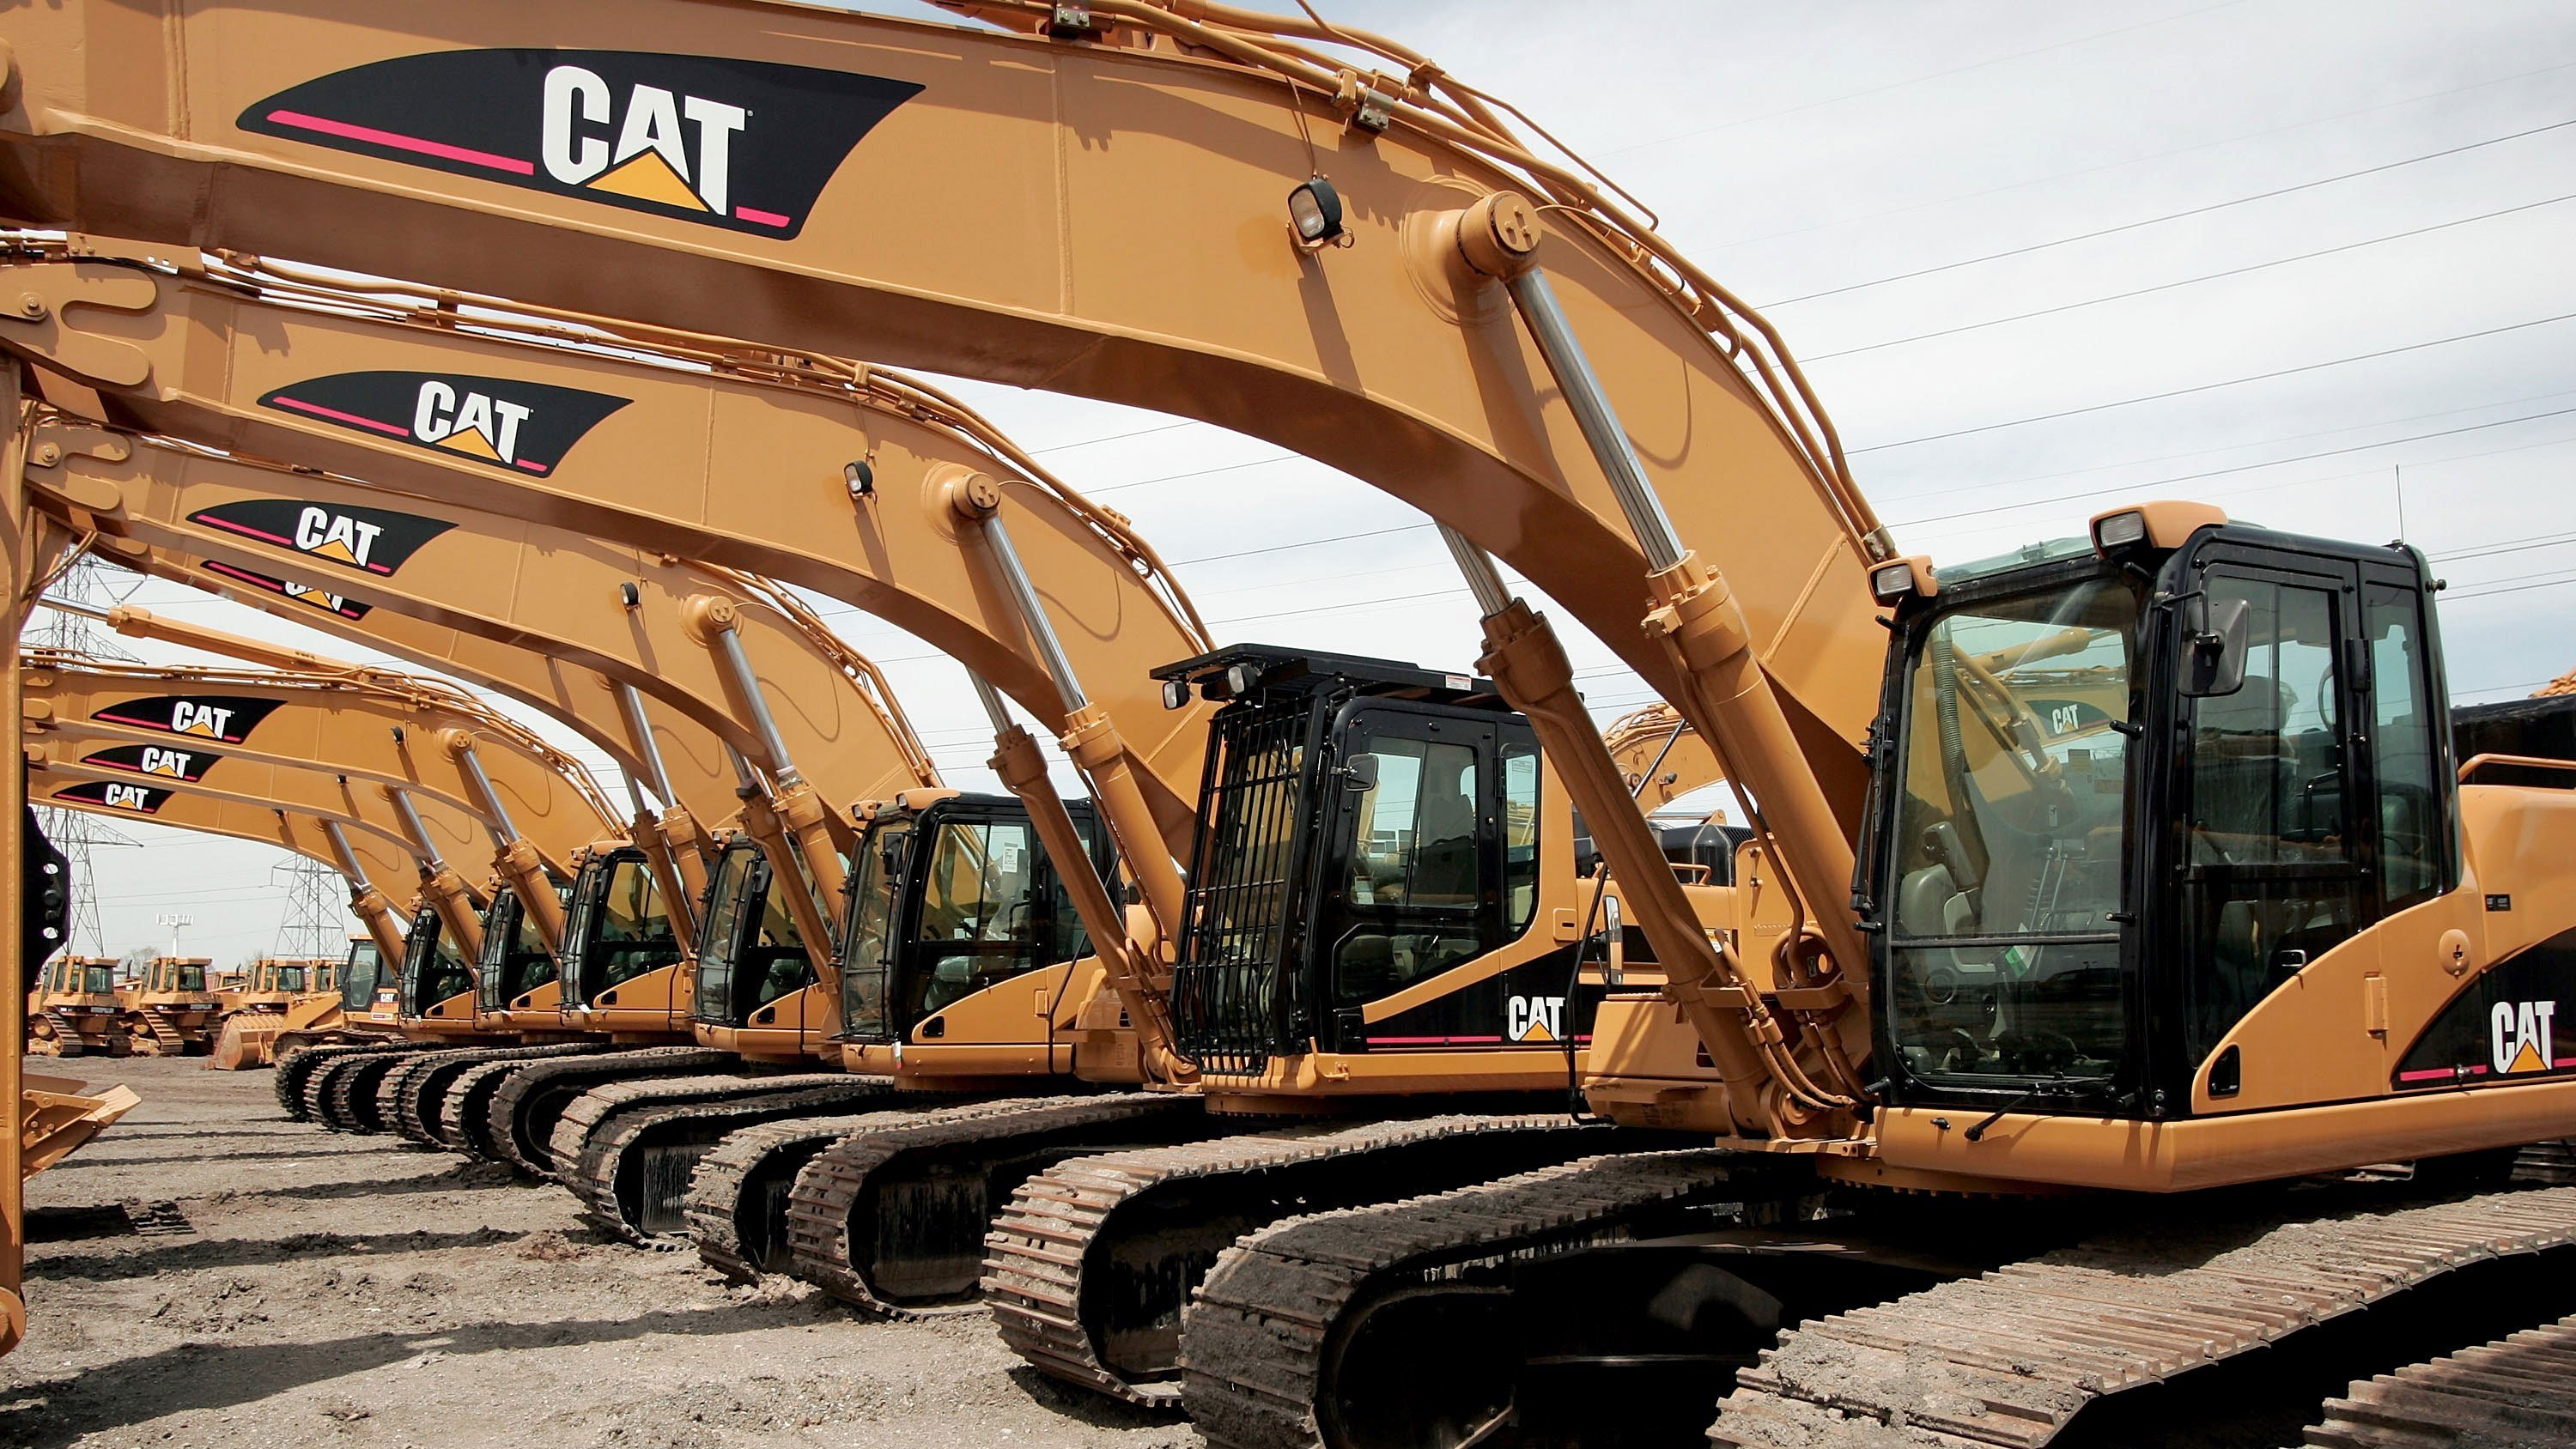 The trade war is stinging Caterpillar, and its outlook is dimming